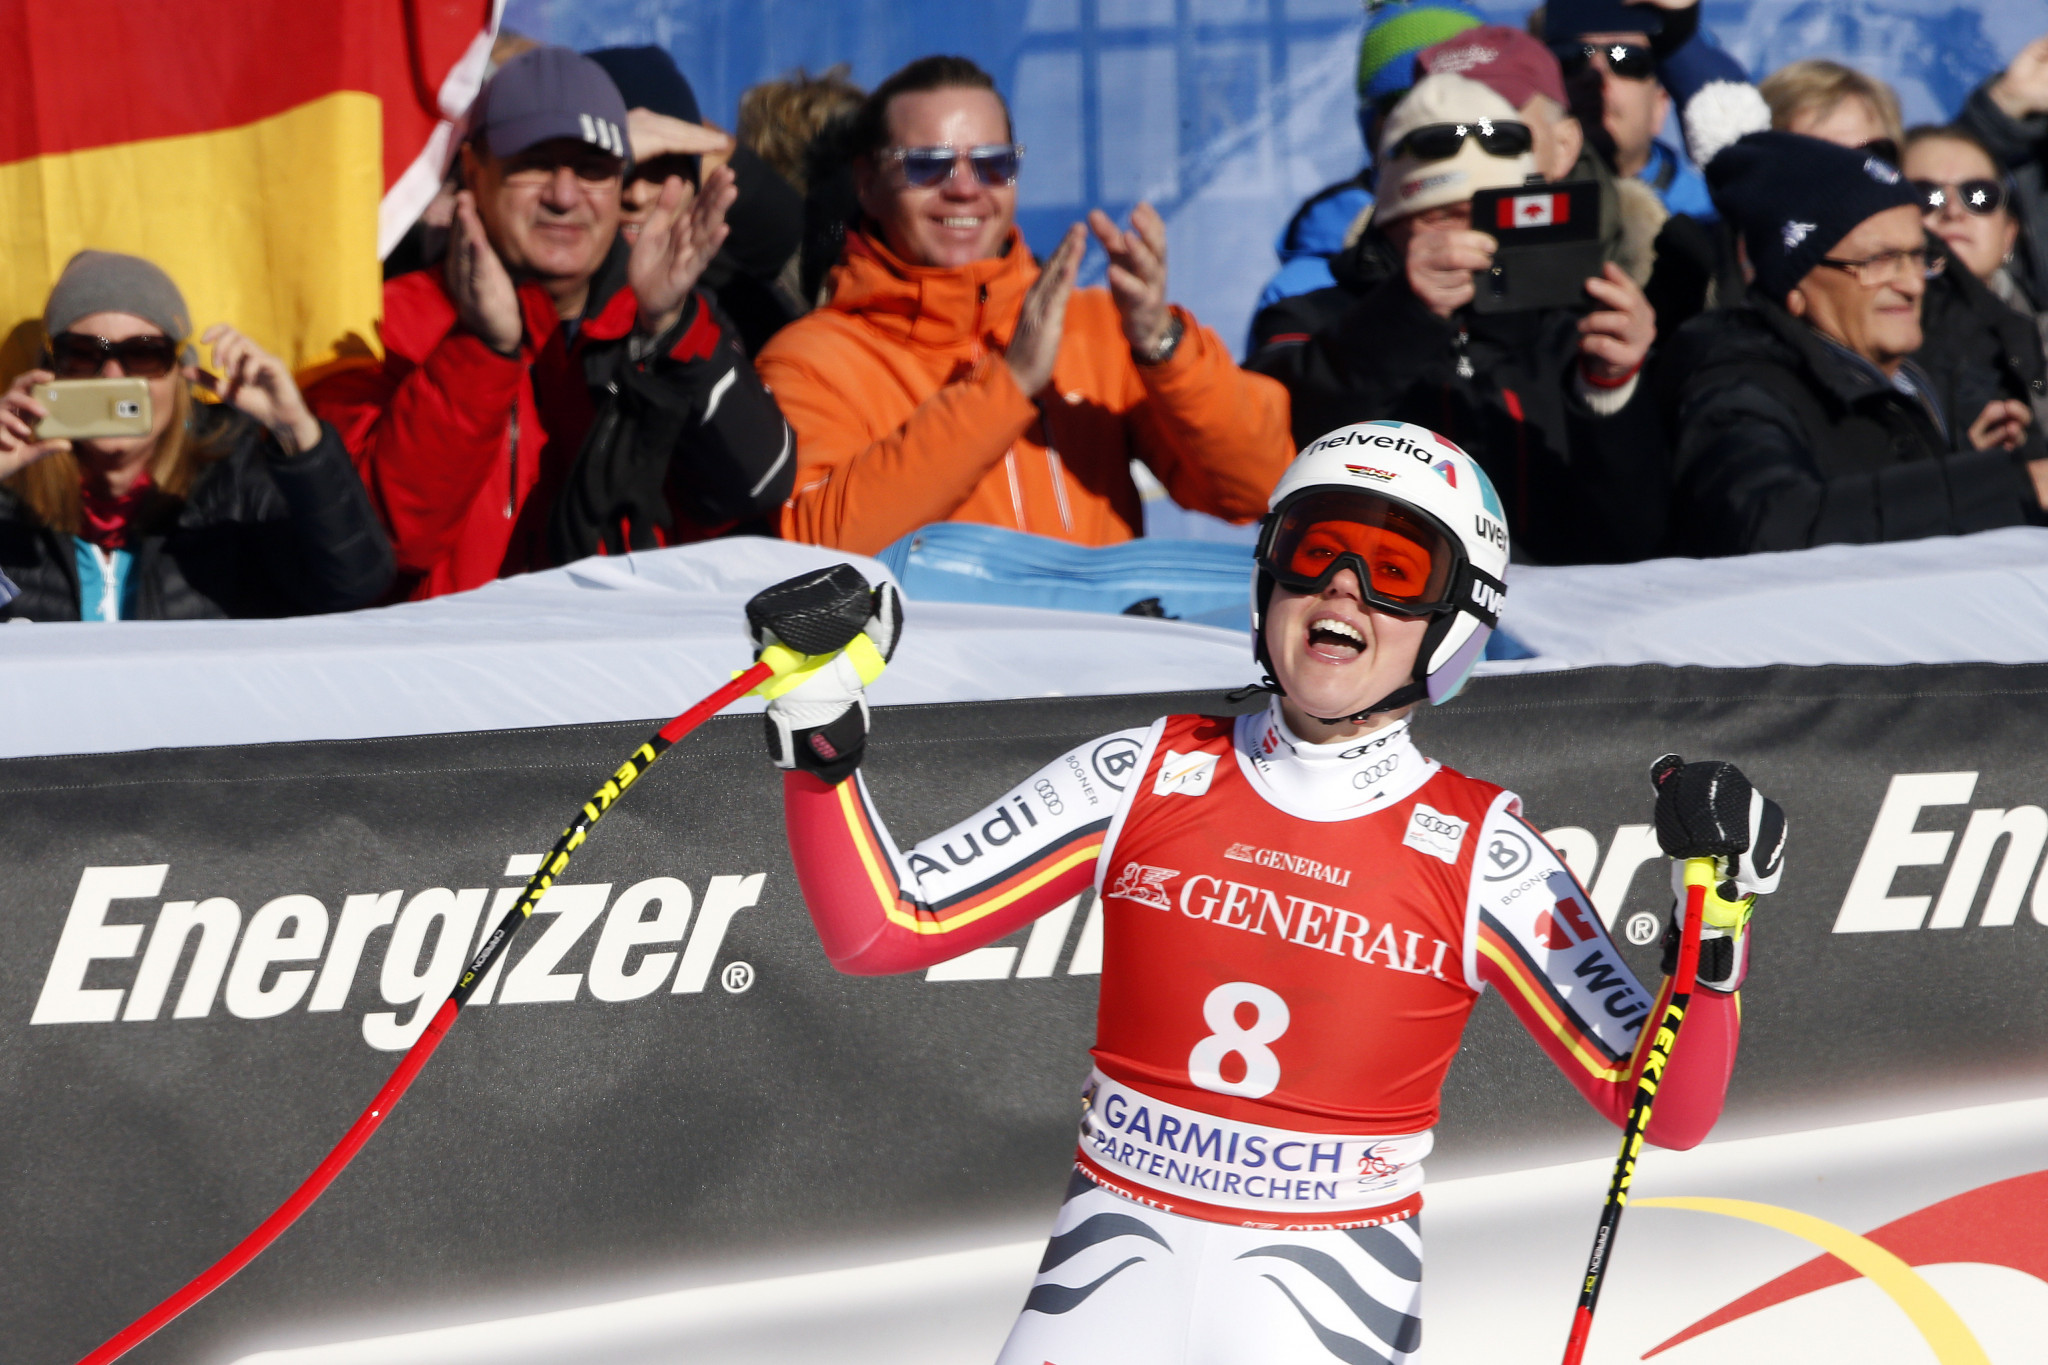 Rebensburg wins first FIS Alpine Ski World Cup downhill event on home turf